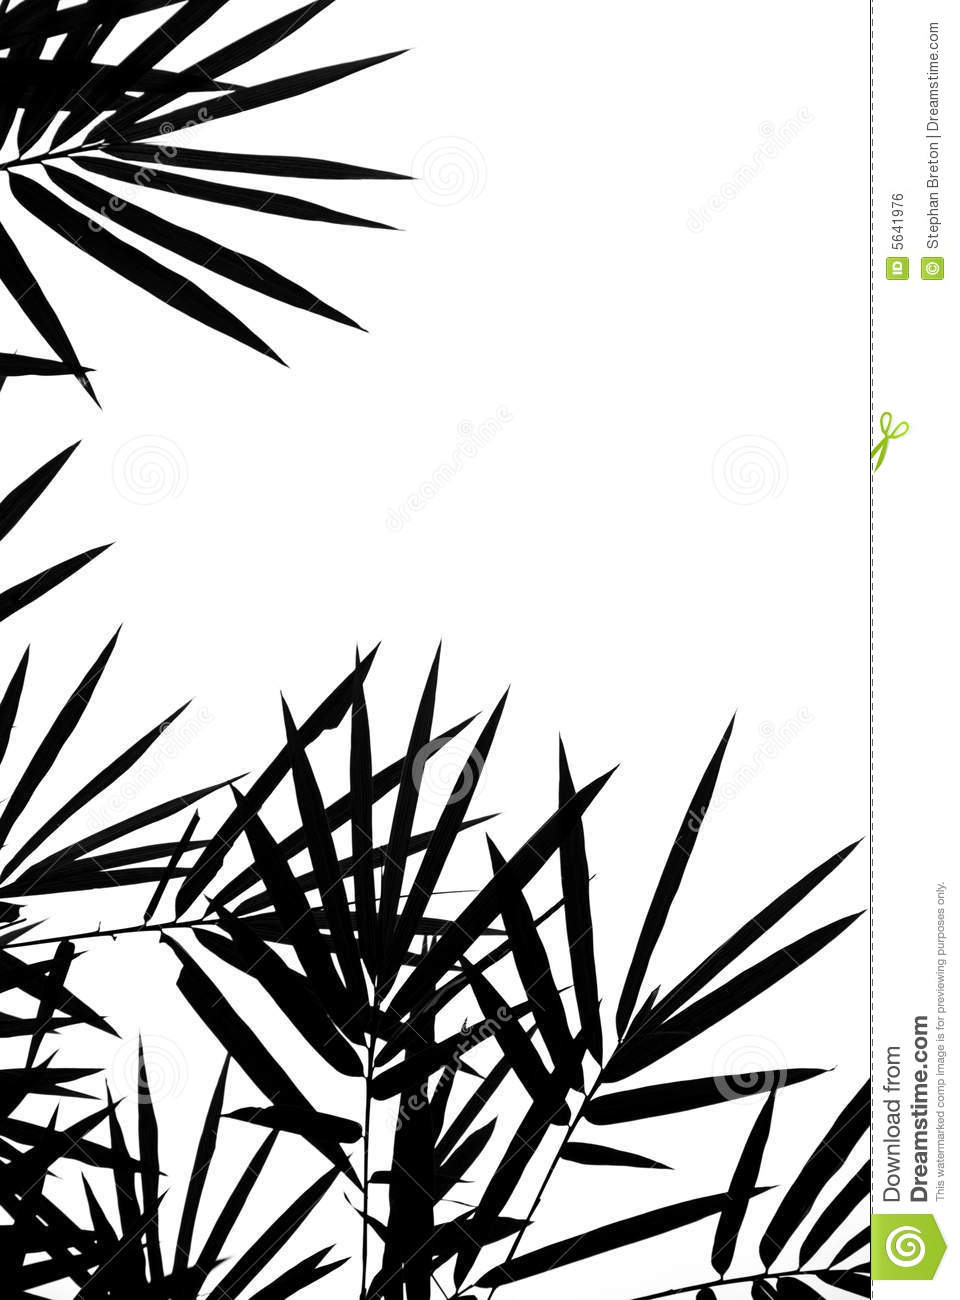 bamboo leaves silhouette background royalty free stock image